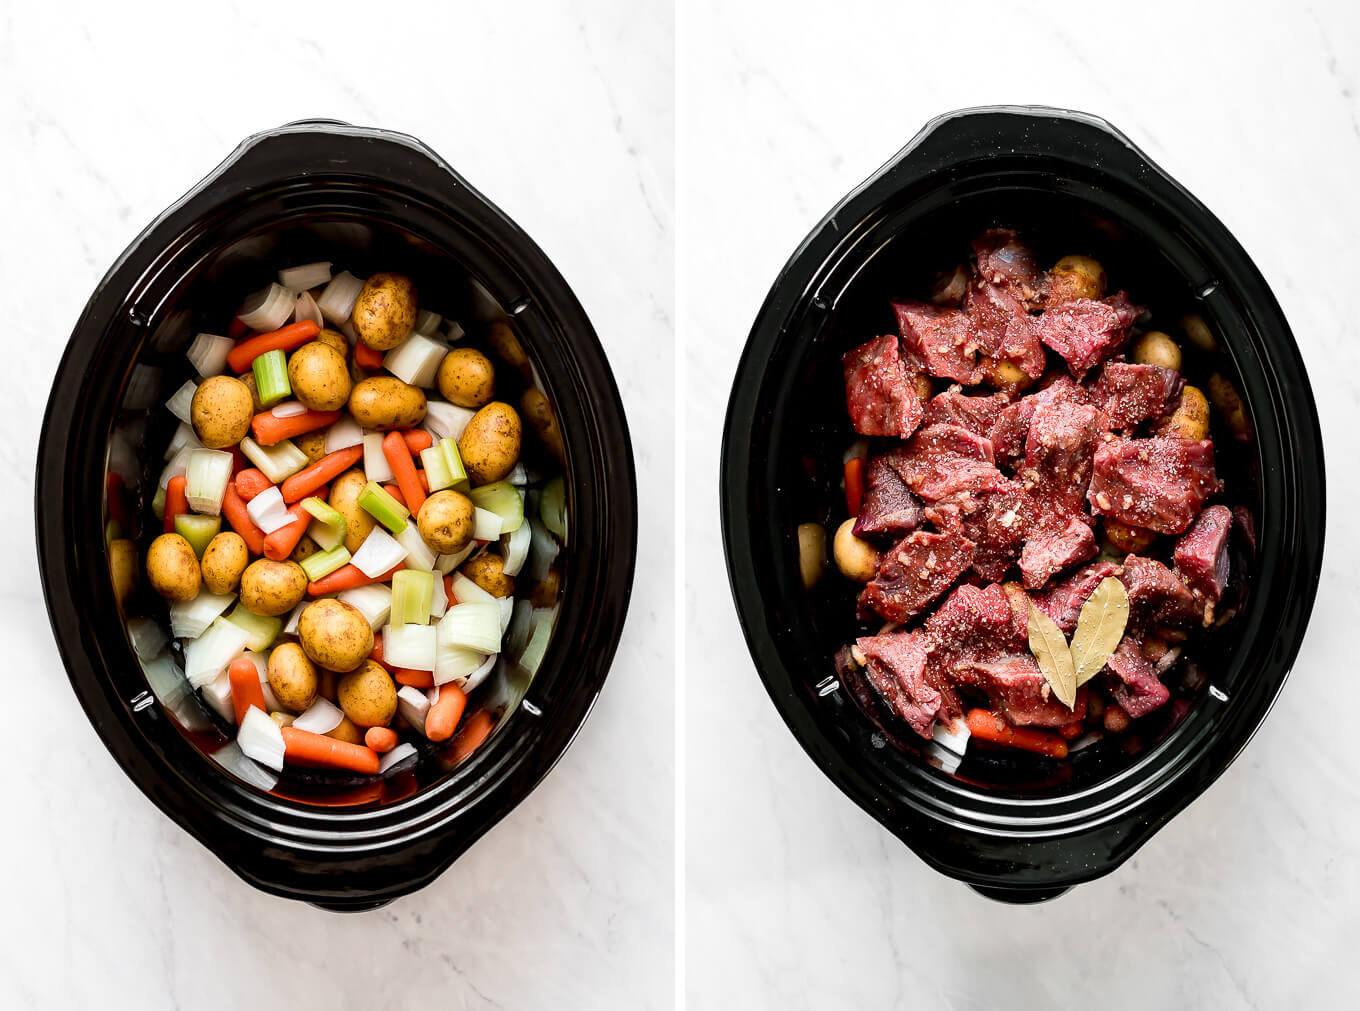 Photo collage: A slow cooker with potatoes, carrots, onions, and celery; a slow cooker with beef chunks on top of vegetables.